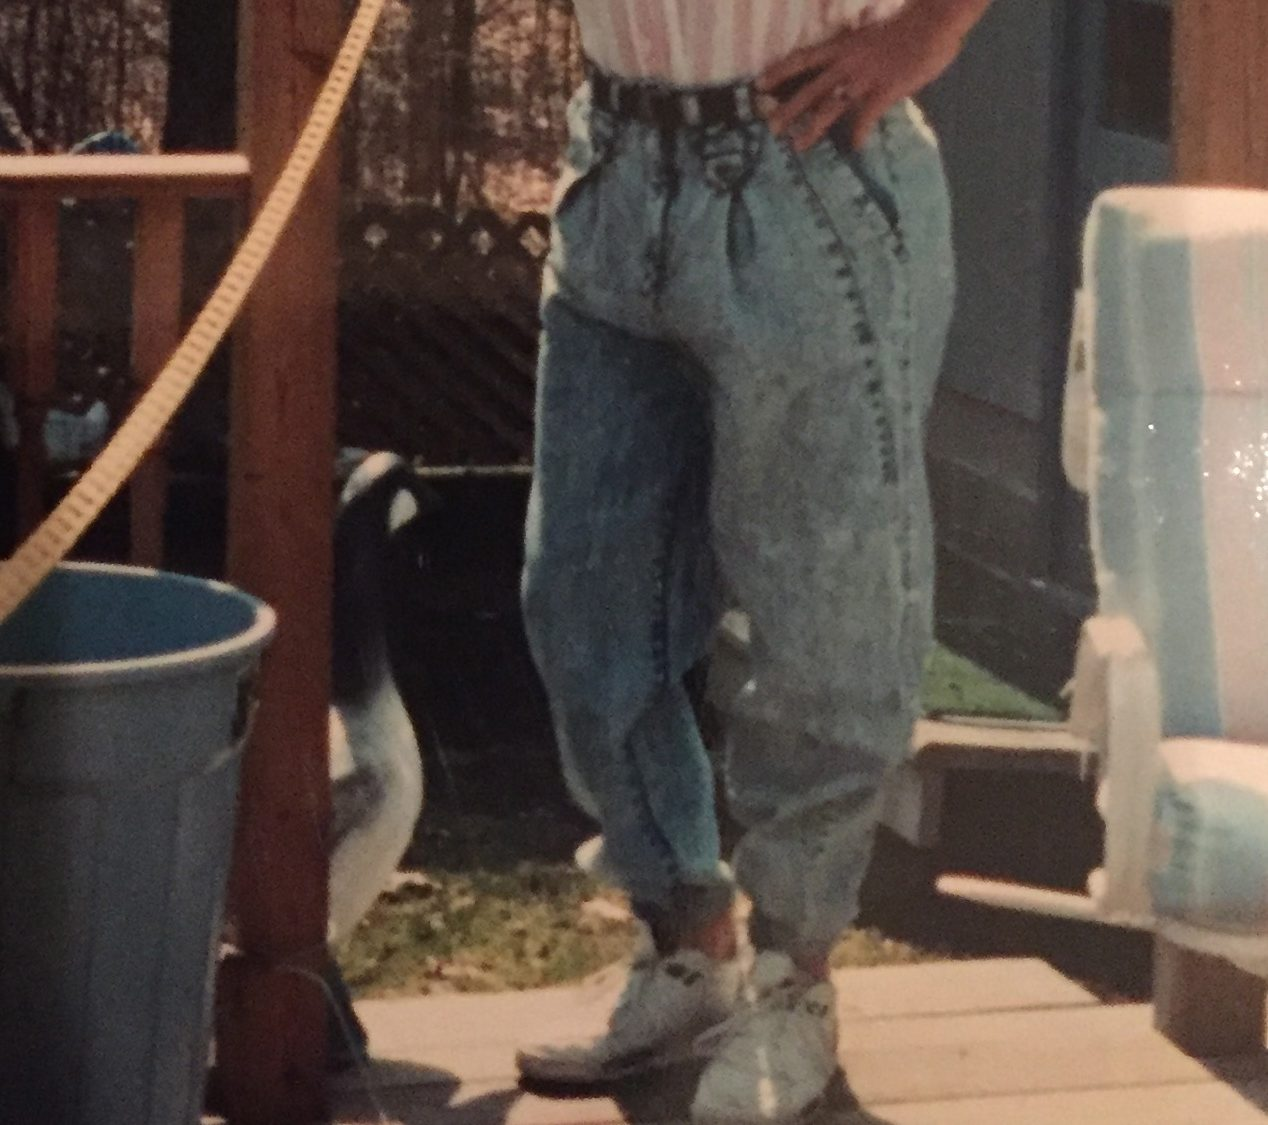 1980s fashion with acid washed jeans e1622545740420 80s Fashion Trends We Should Leave Behind For Good